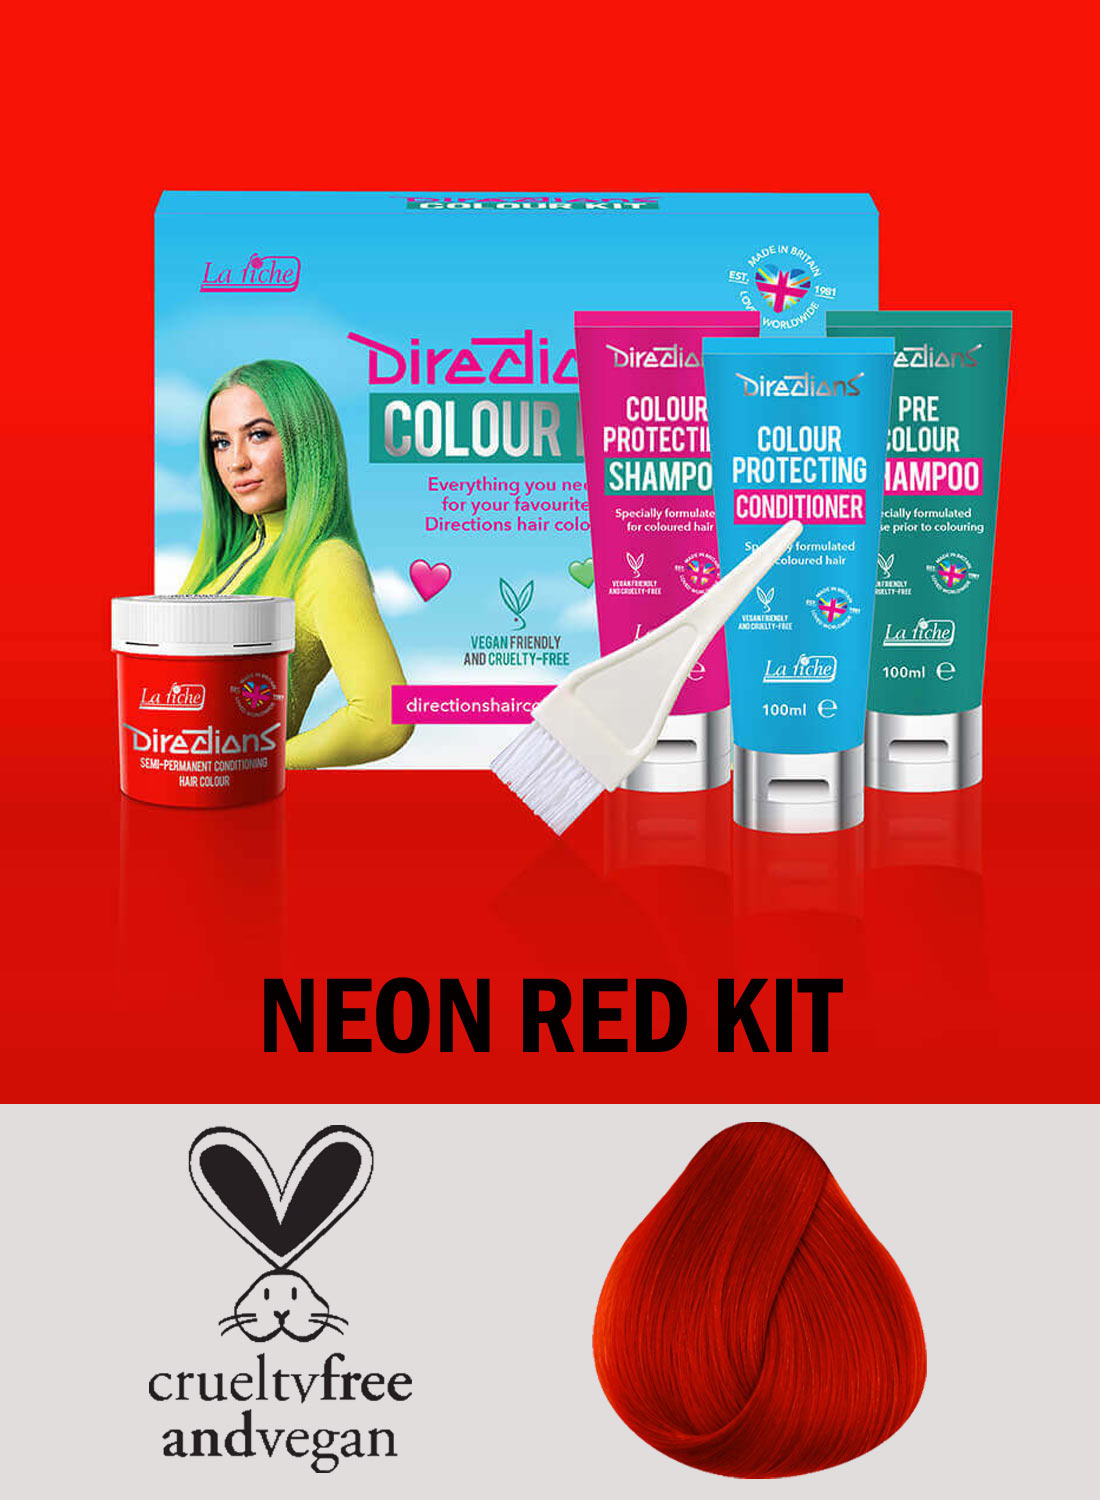 Directions Hair Colour Neon Red kit